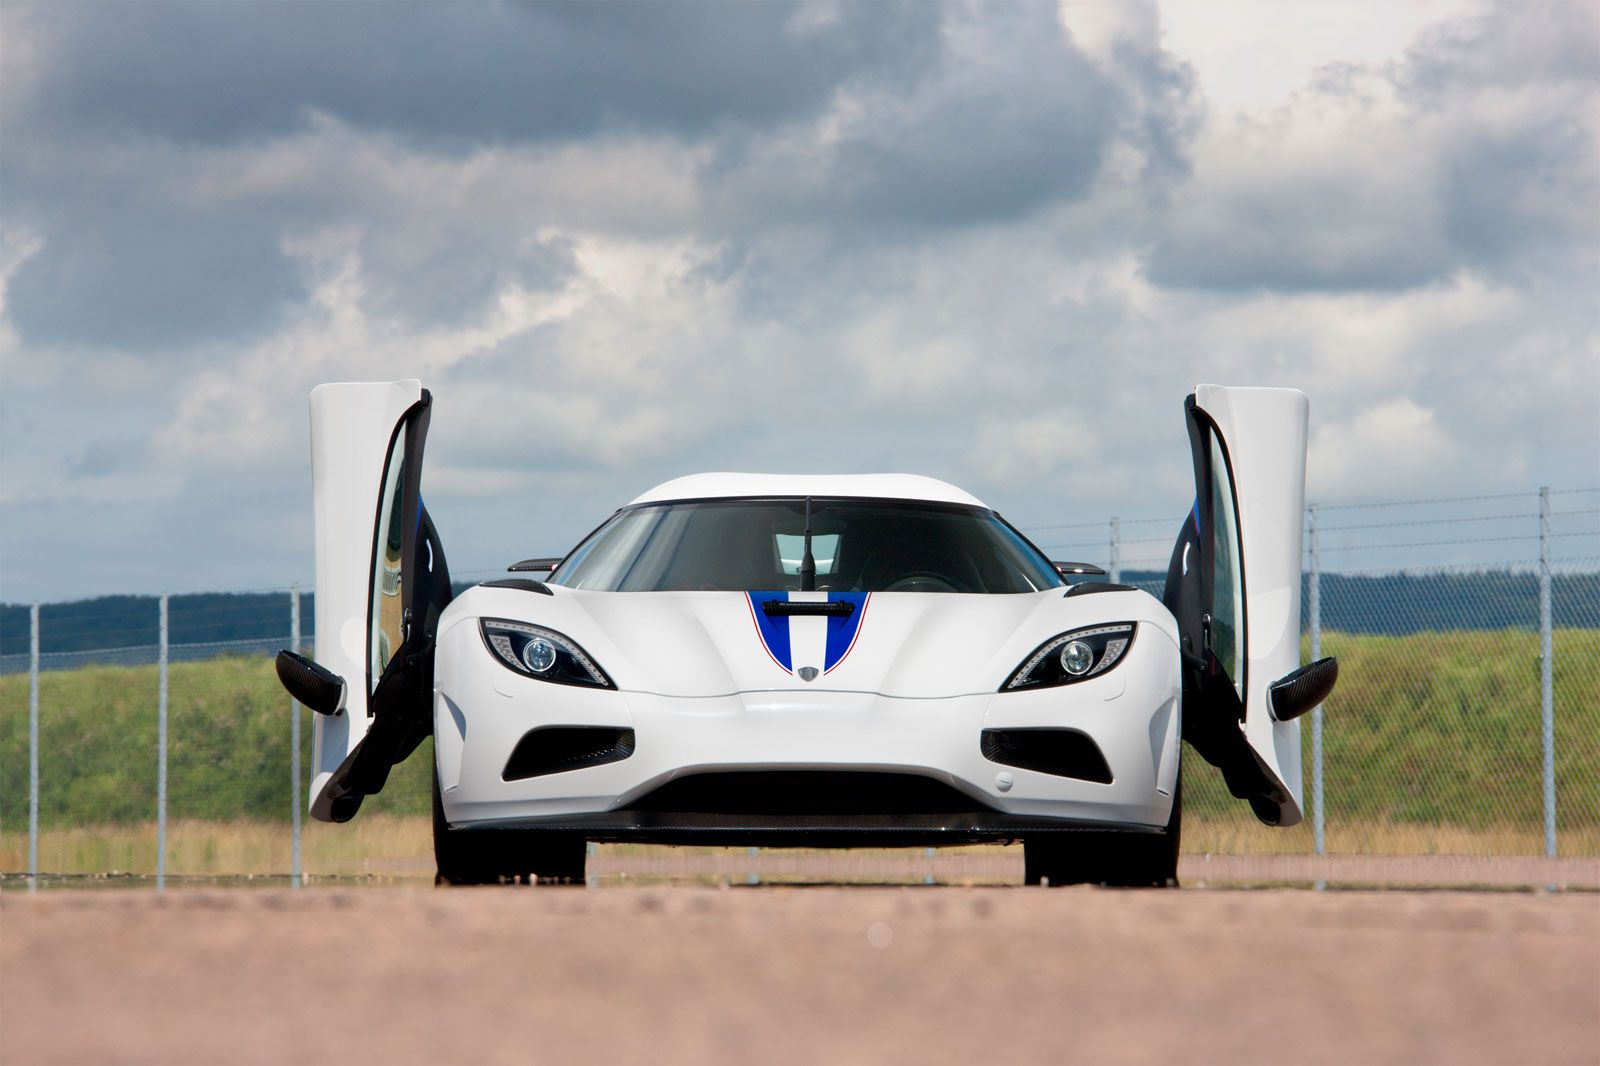 Koenigsegg agera r 2013 widescreen exotic car photo of 32 diesel station